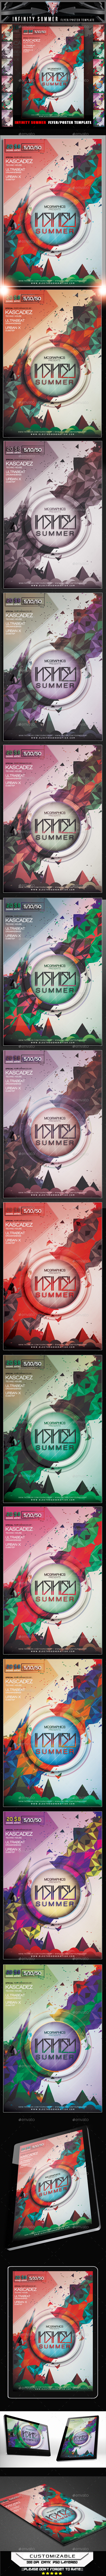 Infinity Summer Flyer Template - Events Flyers